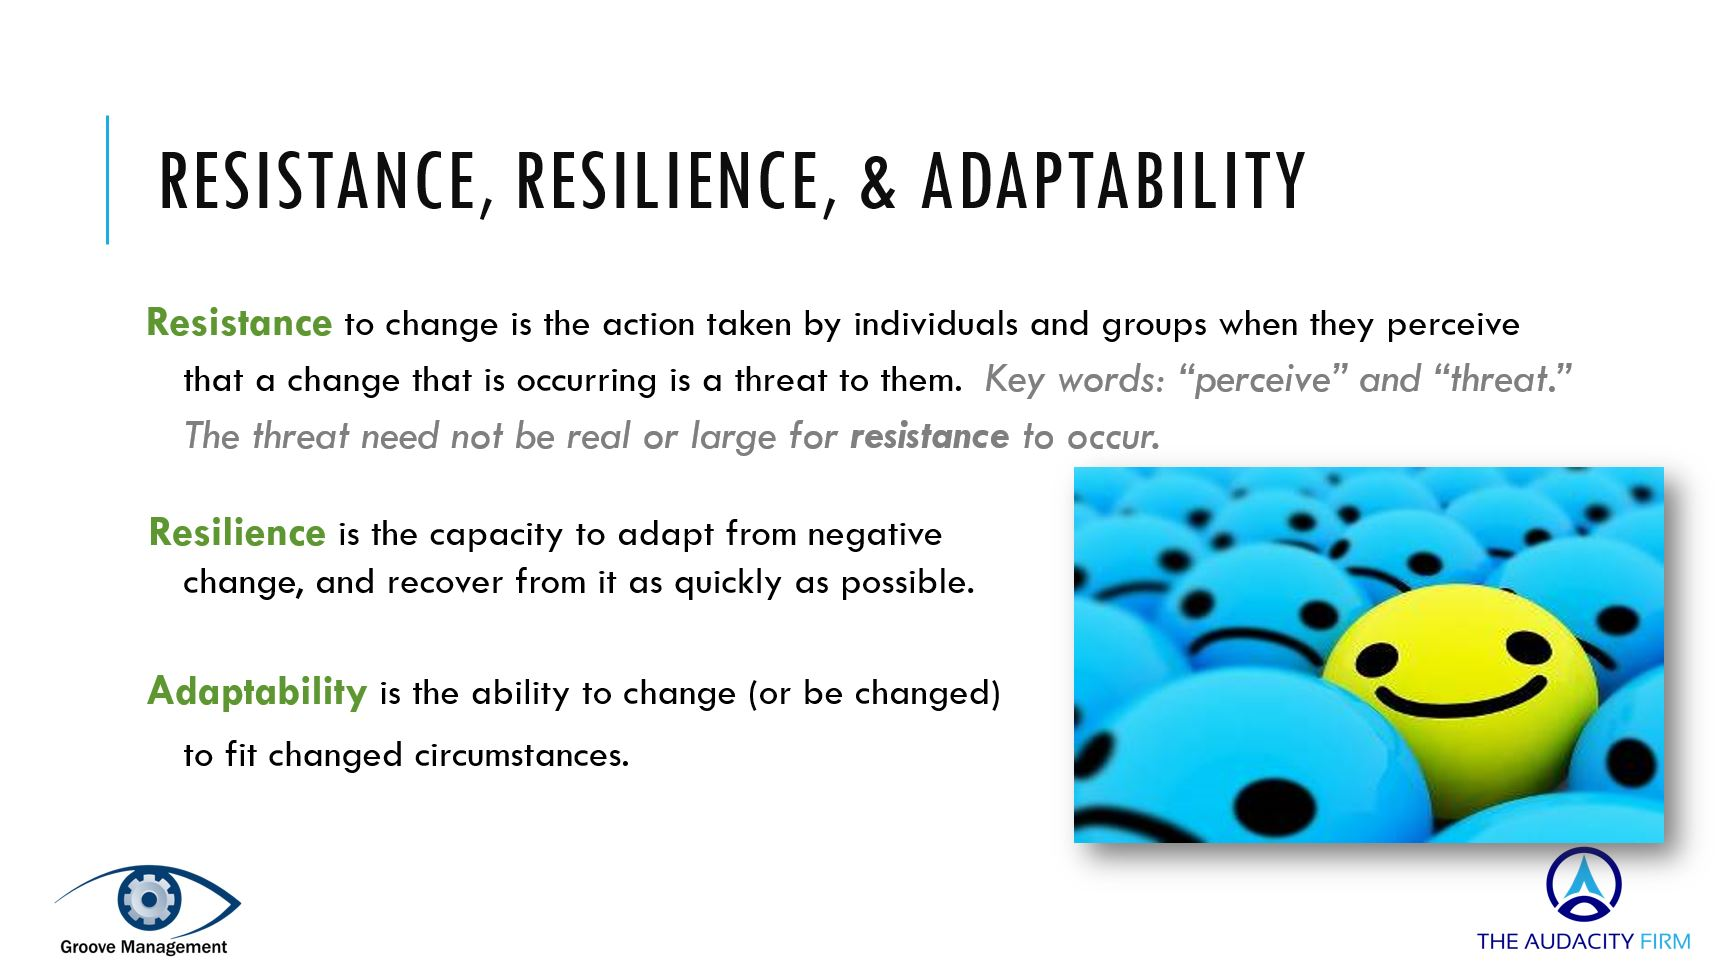 Resistance resilience and adaptability